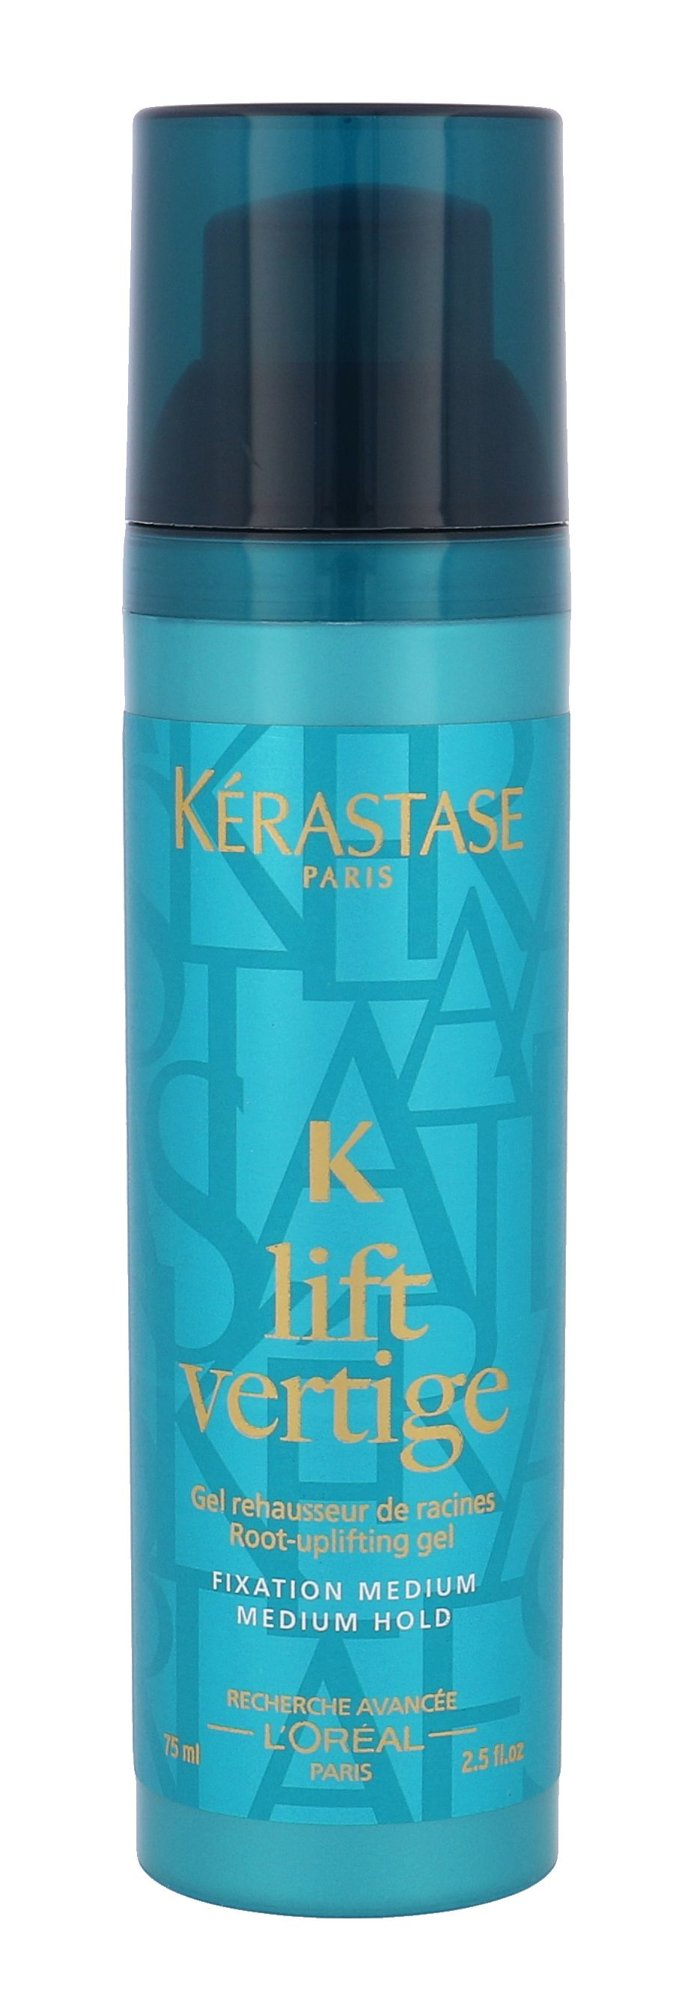 Kérastase Lift Vertige Cosmetic 75ml